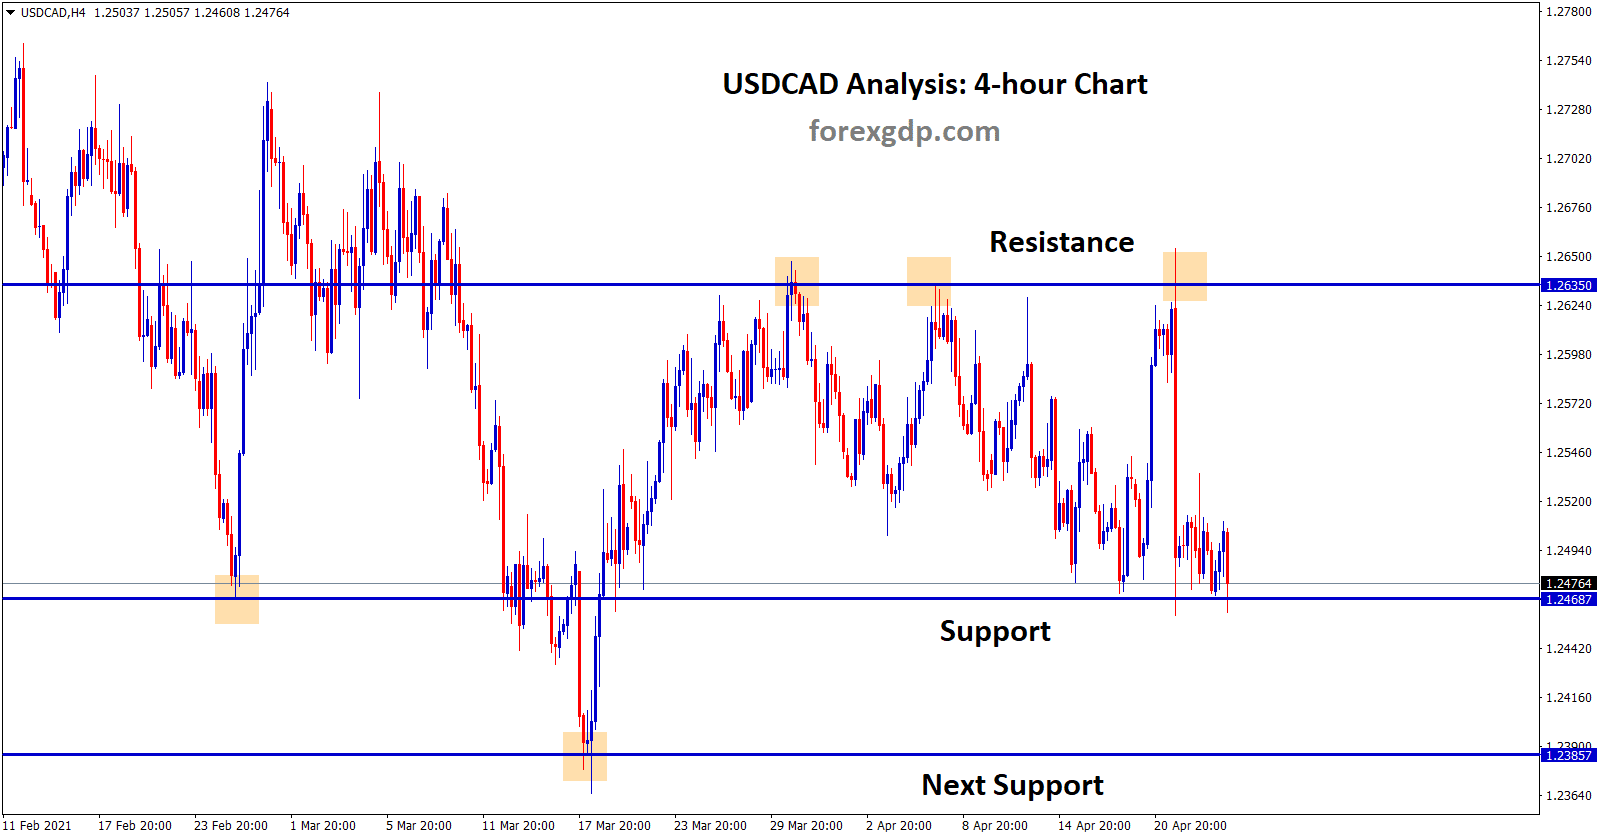 USDCAD is moving up and down between the support and resistance area